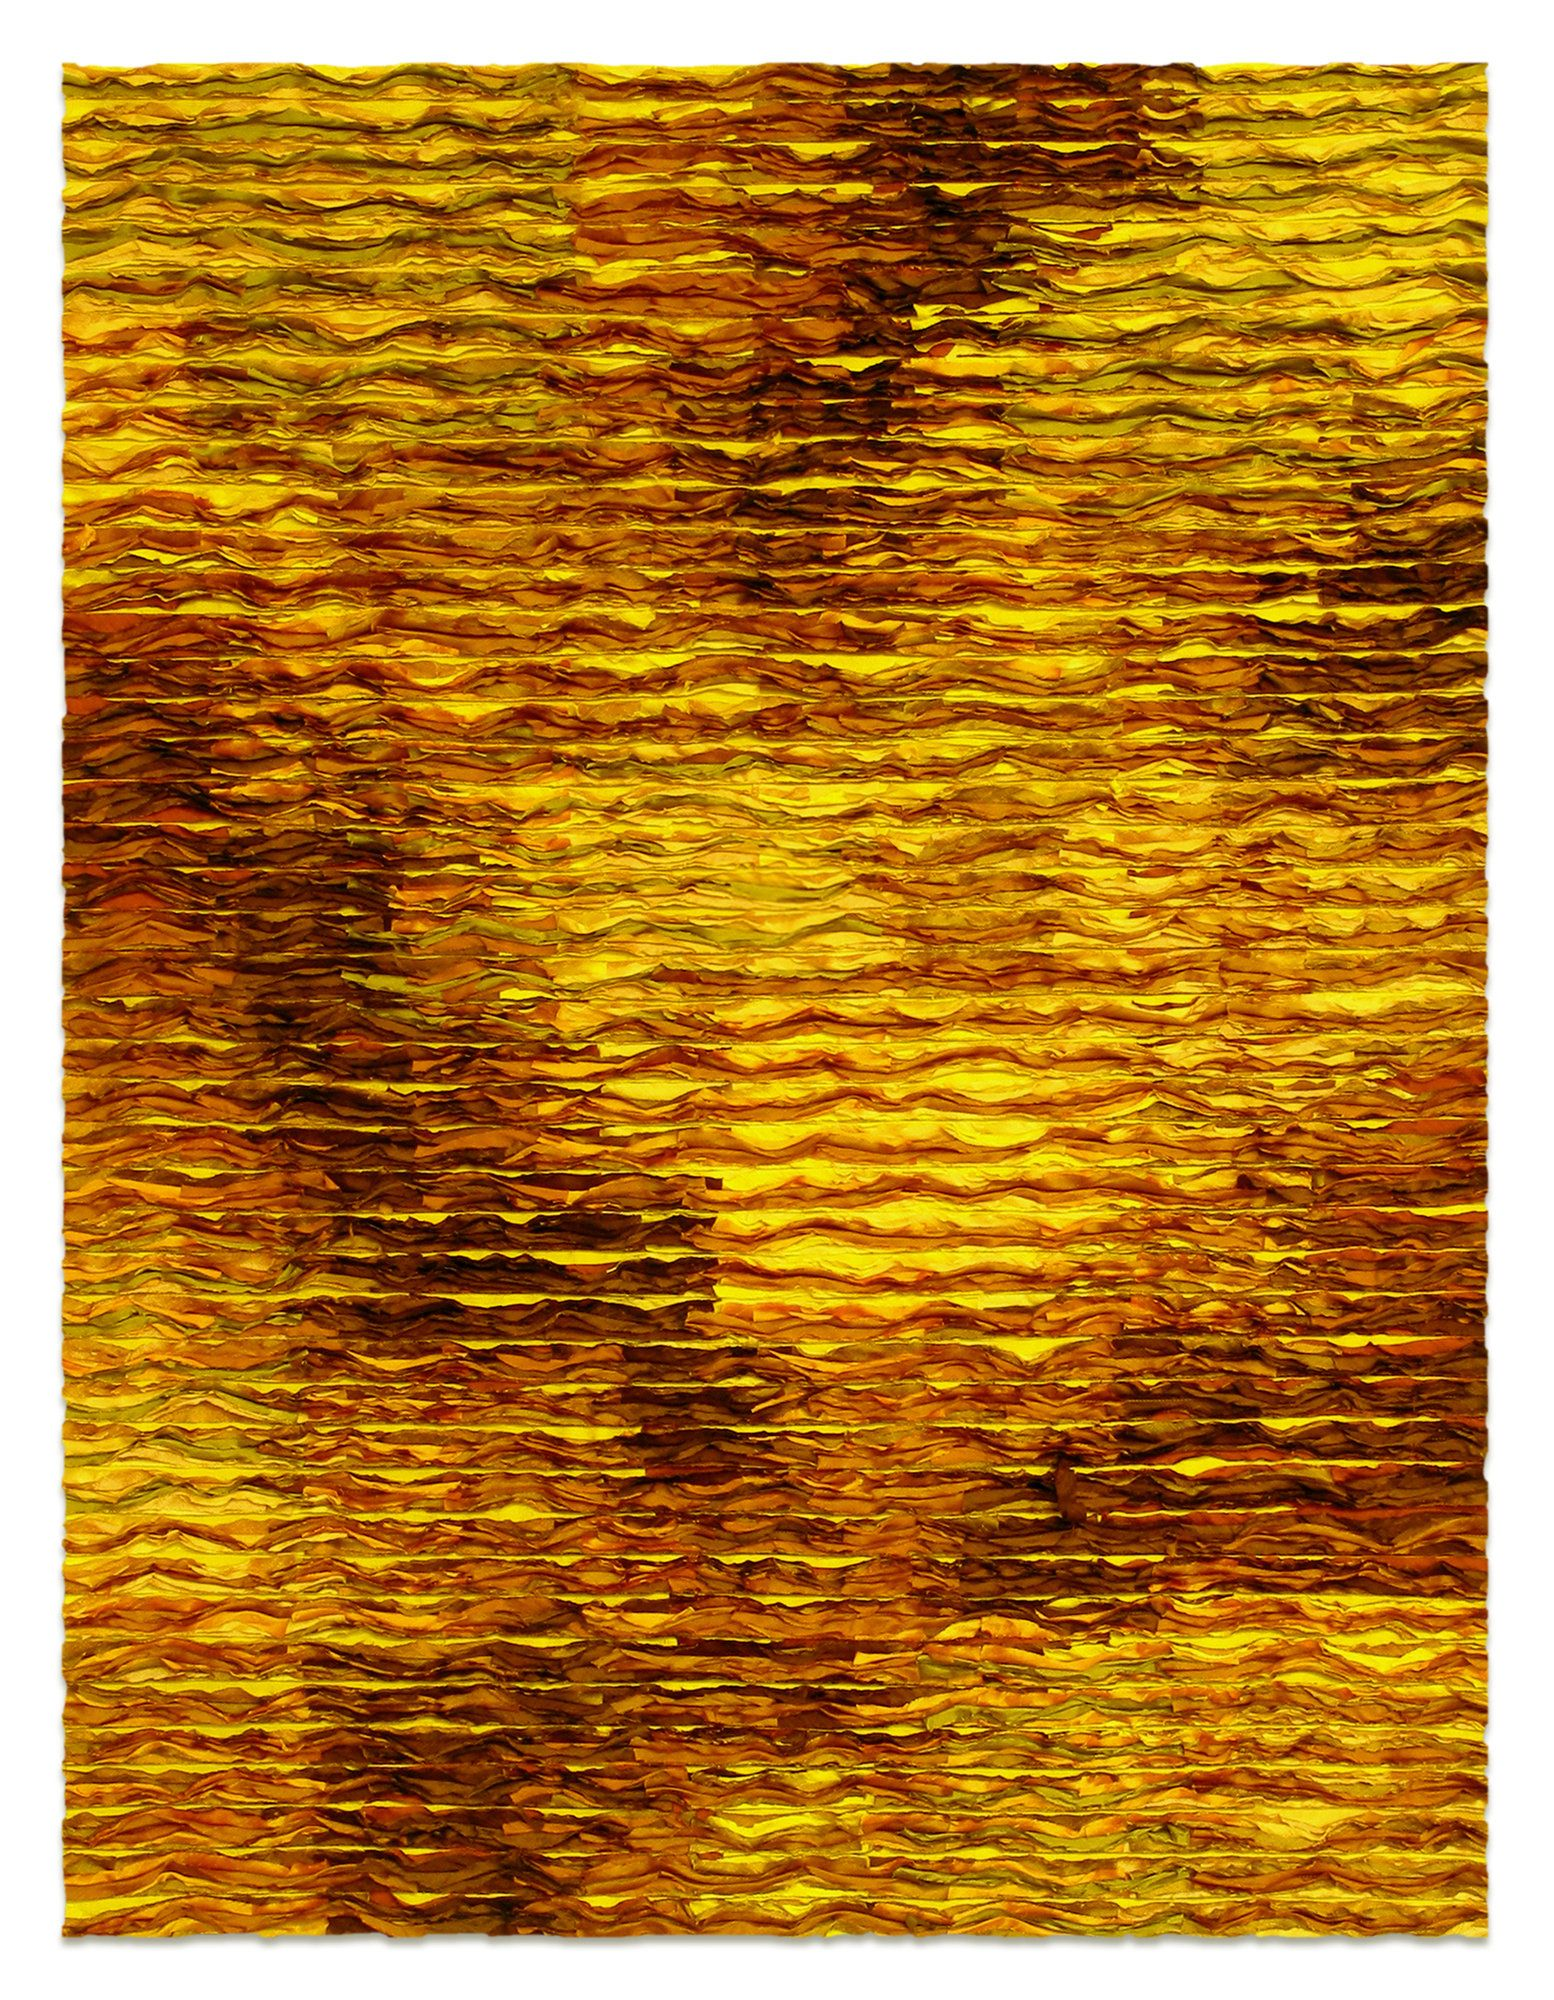 Ochre by Tim Harding. Richly textured fiber wall piece made in a collage-layered, reverse applique technique of iridescent, lustrous, hand-loomed Indian silks on a two-ply cotton duck backing. Signed on reverse at bottom. Installation materials included.